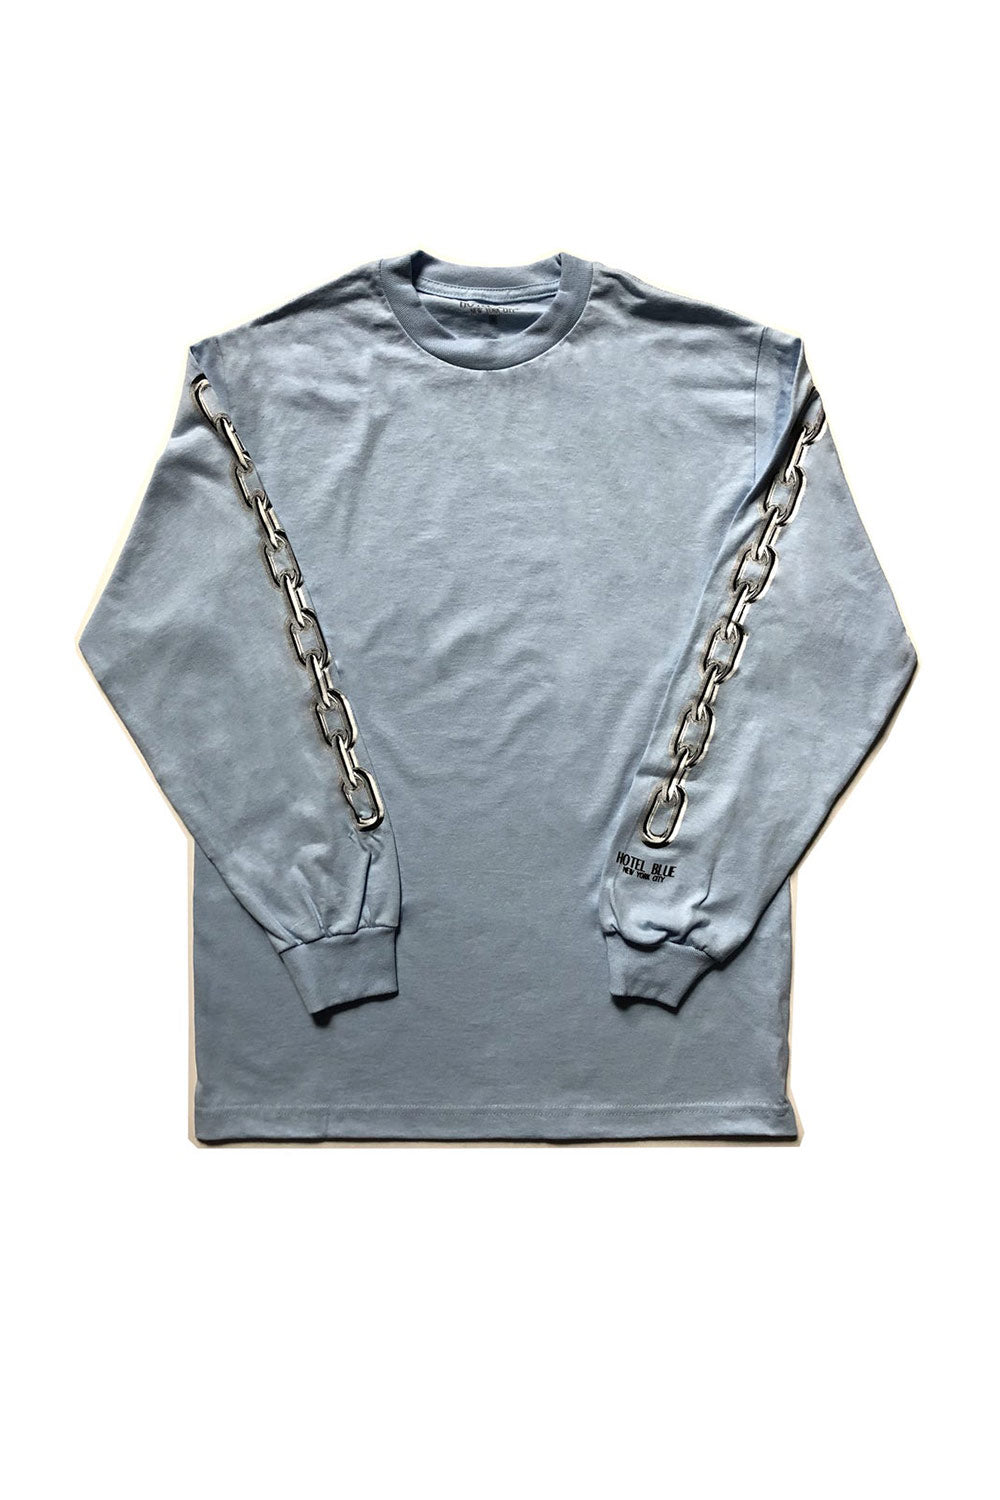 Hotel Blue Chains L/S Tee - Slate | Hotel Blue NYC Clothing Online